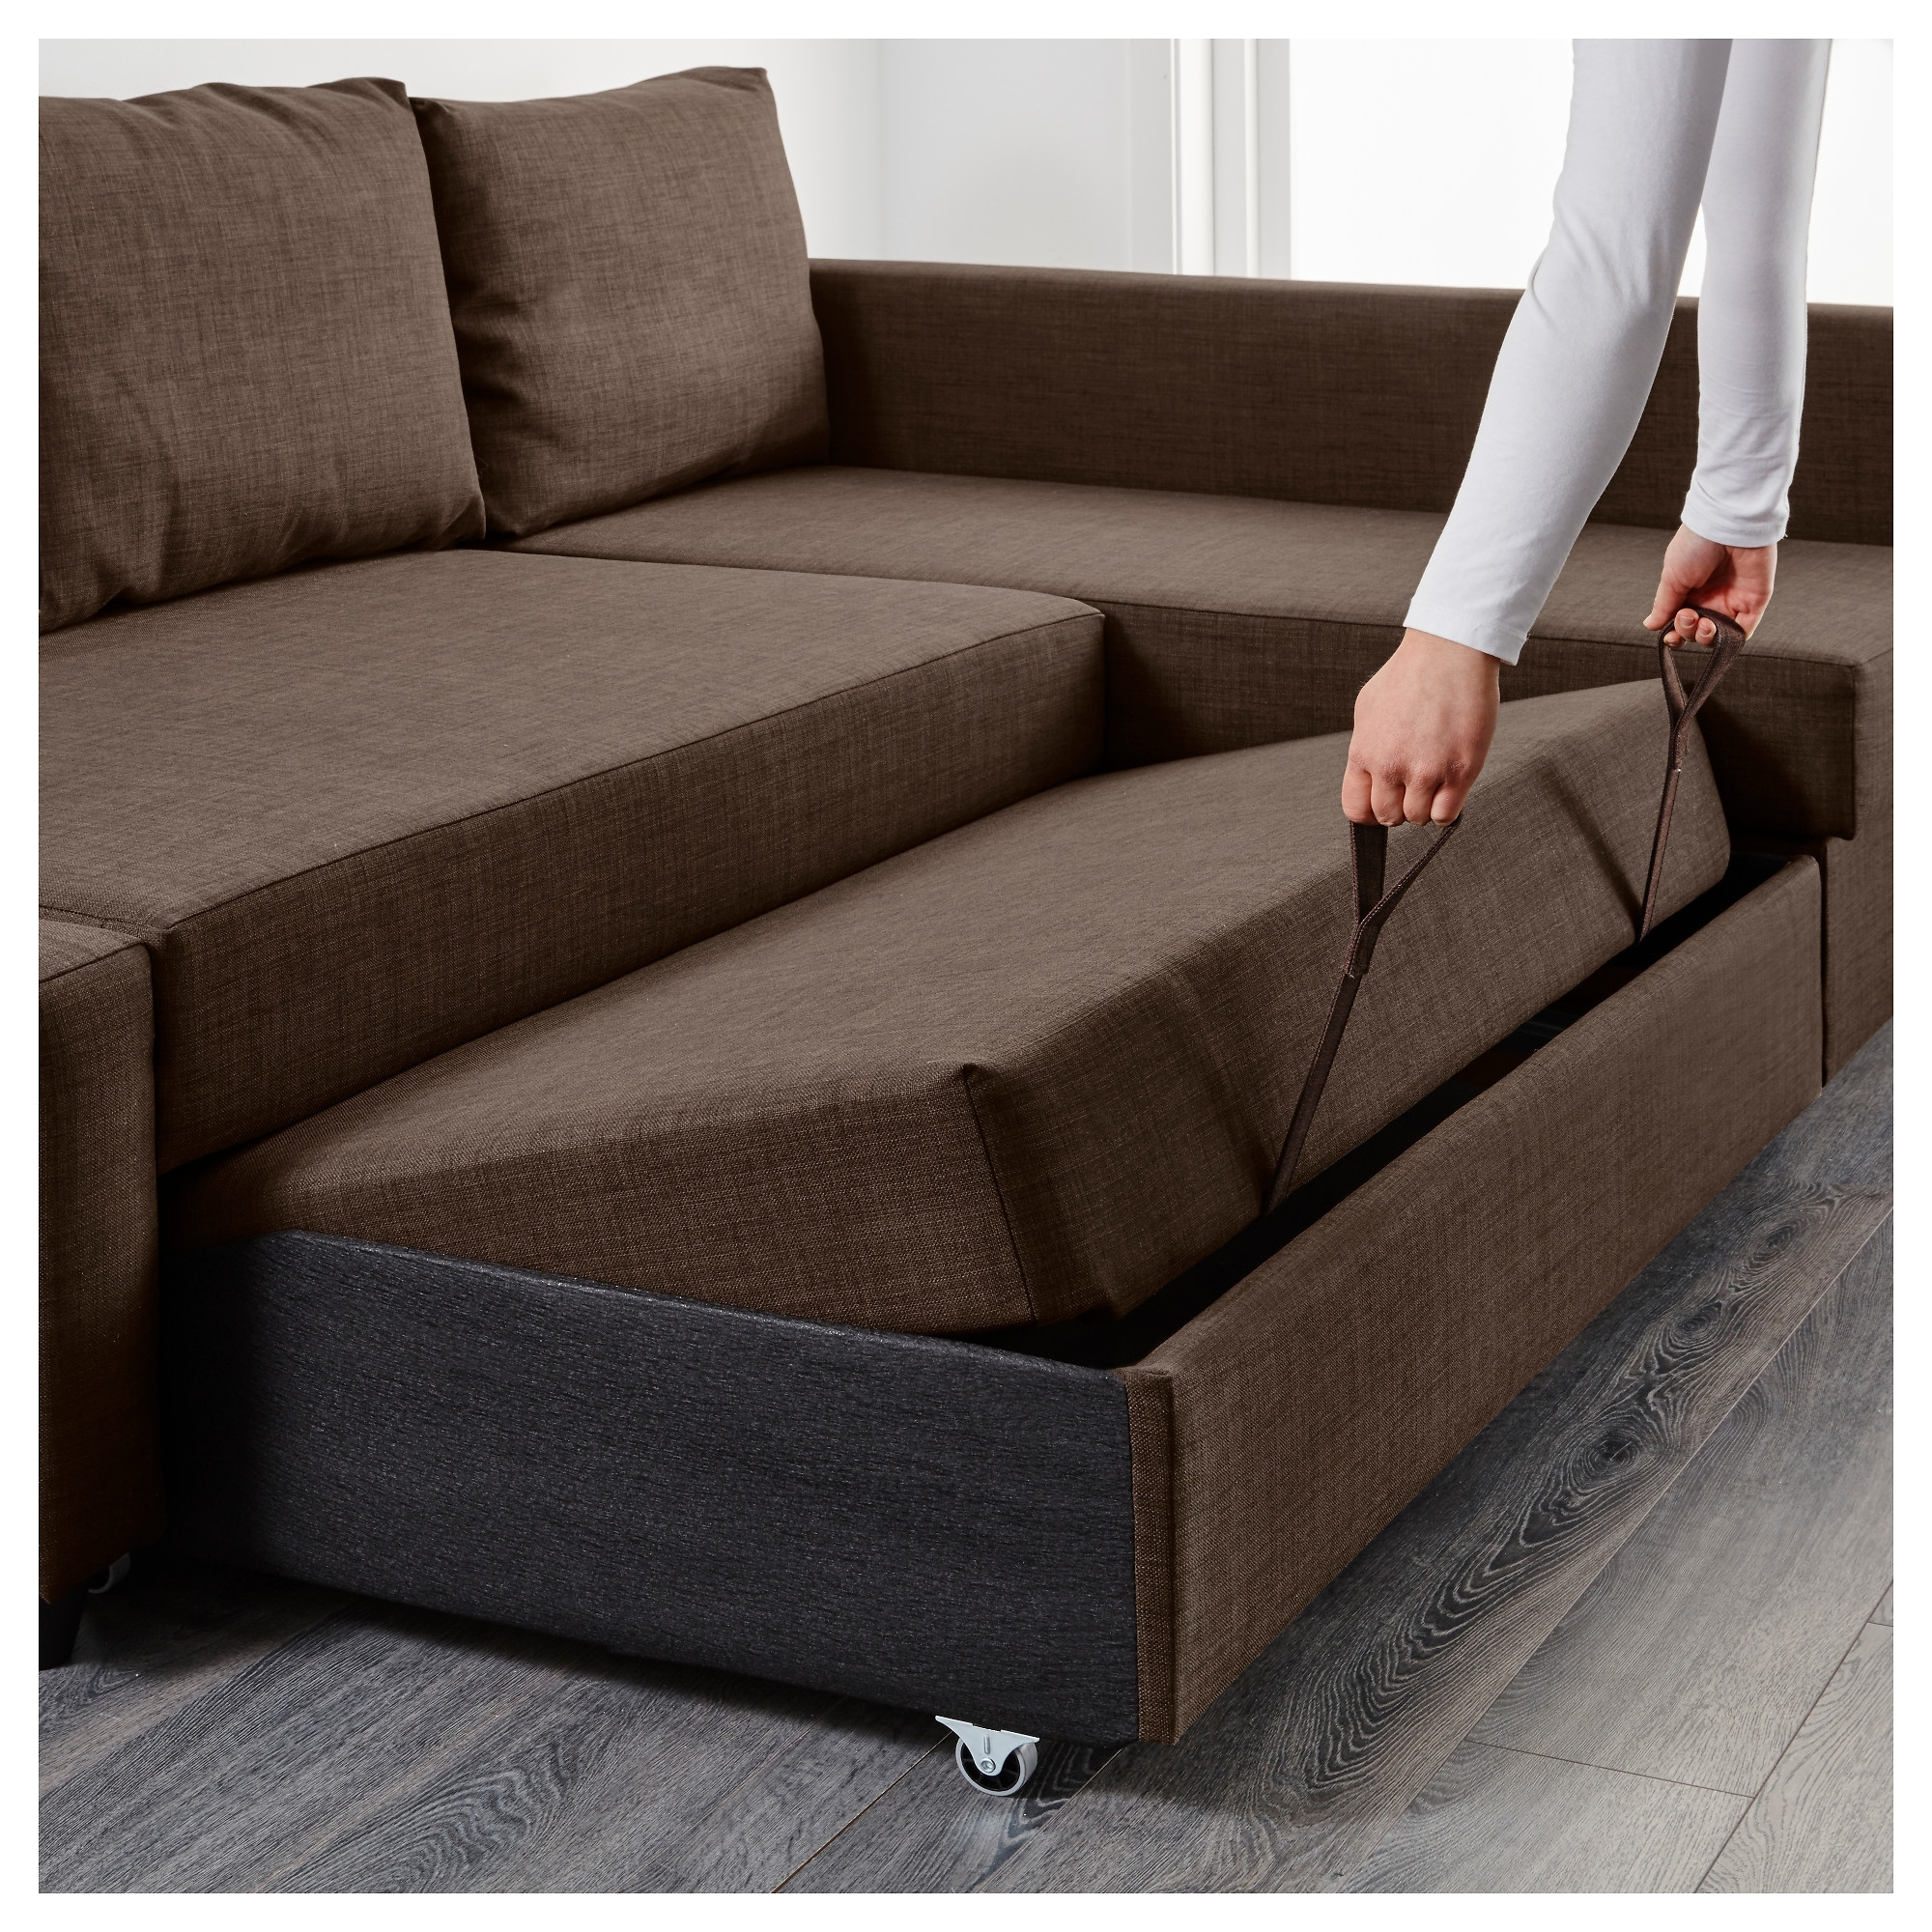 Ikea Sectional Sleeper Sofas Within Most Up To Date Friheten Sleeper Sectional,3 Seat W/storage – Skiftebo Dark Gray (View 4 of 15)